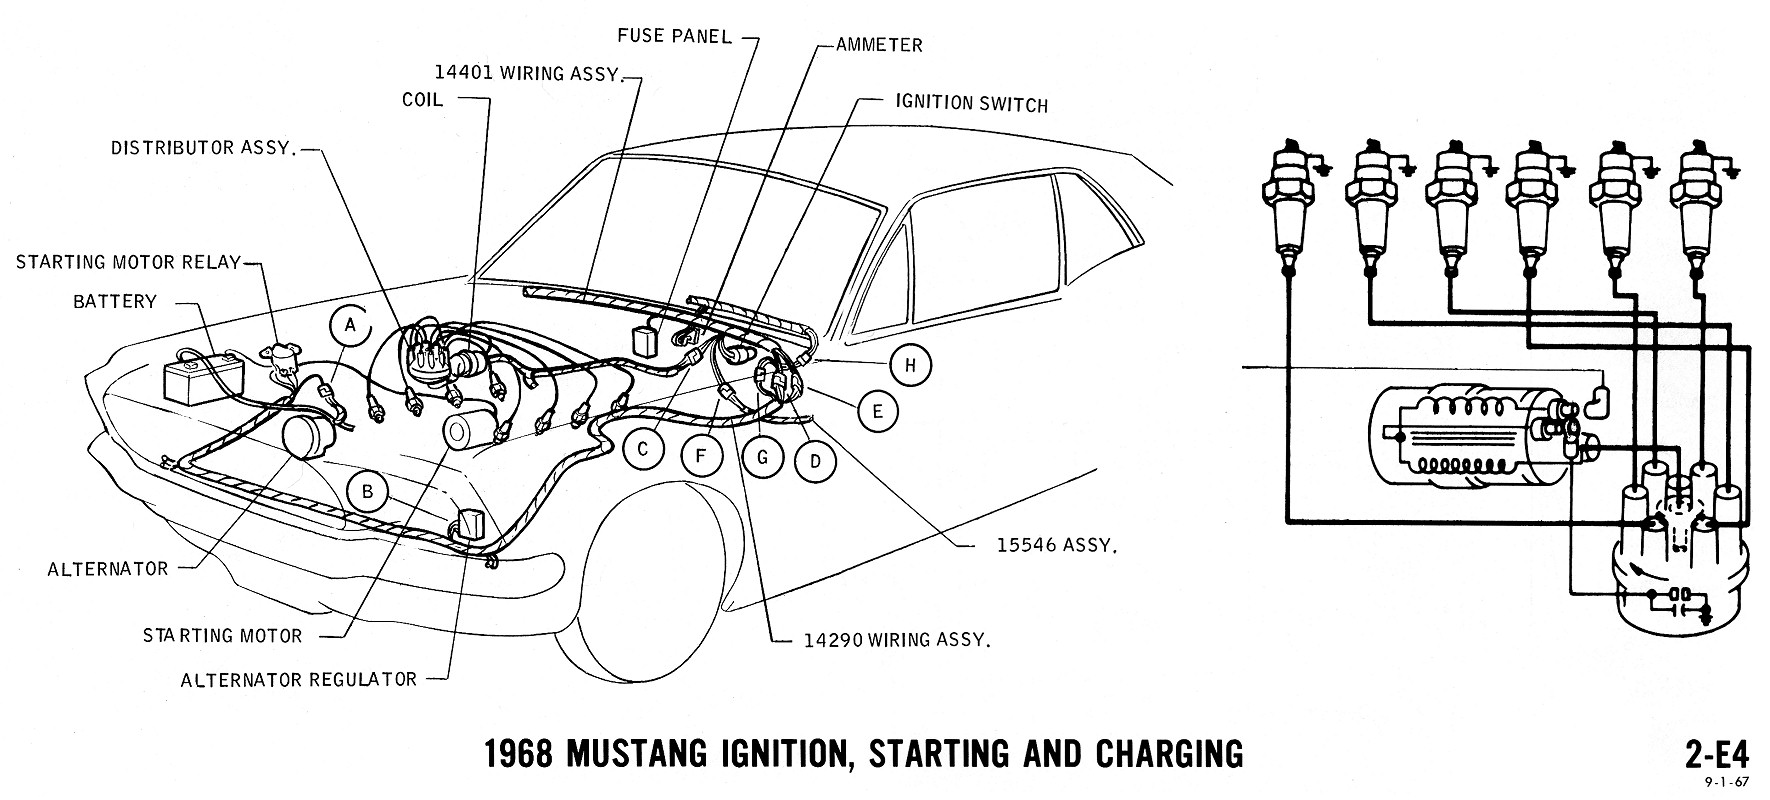 1968 mustang wiring diagrams and vacuum schematics average joe rh  averagejoerestoration com 1968 ford mustang alternator